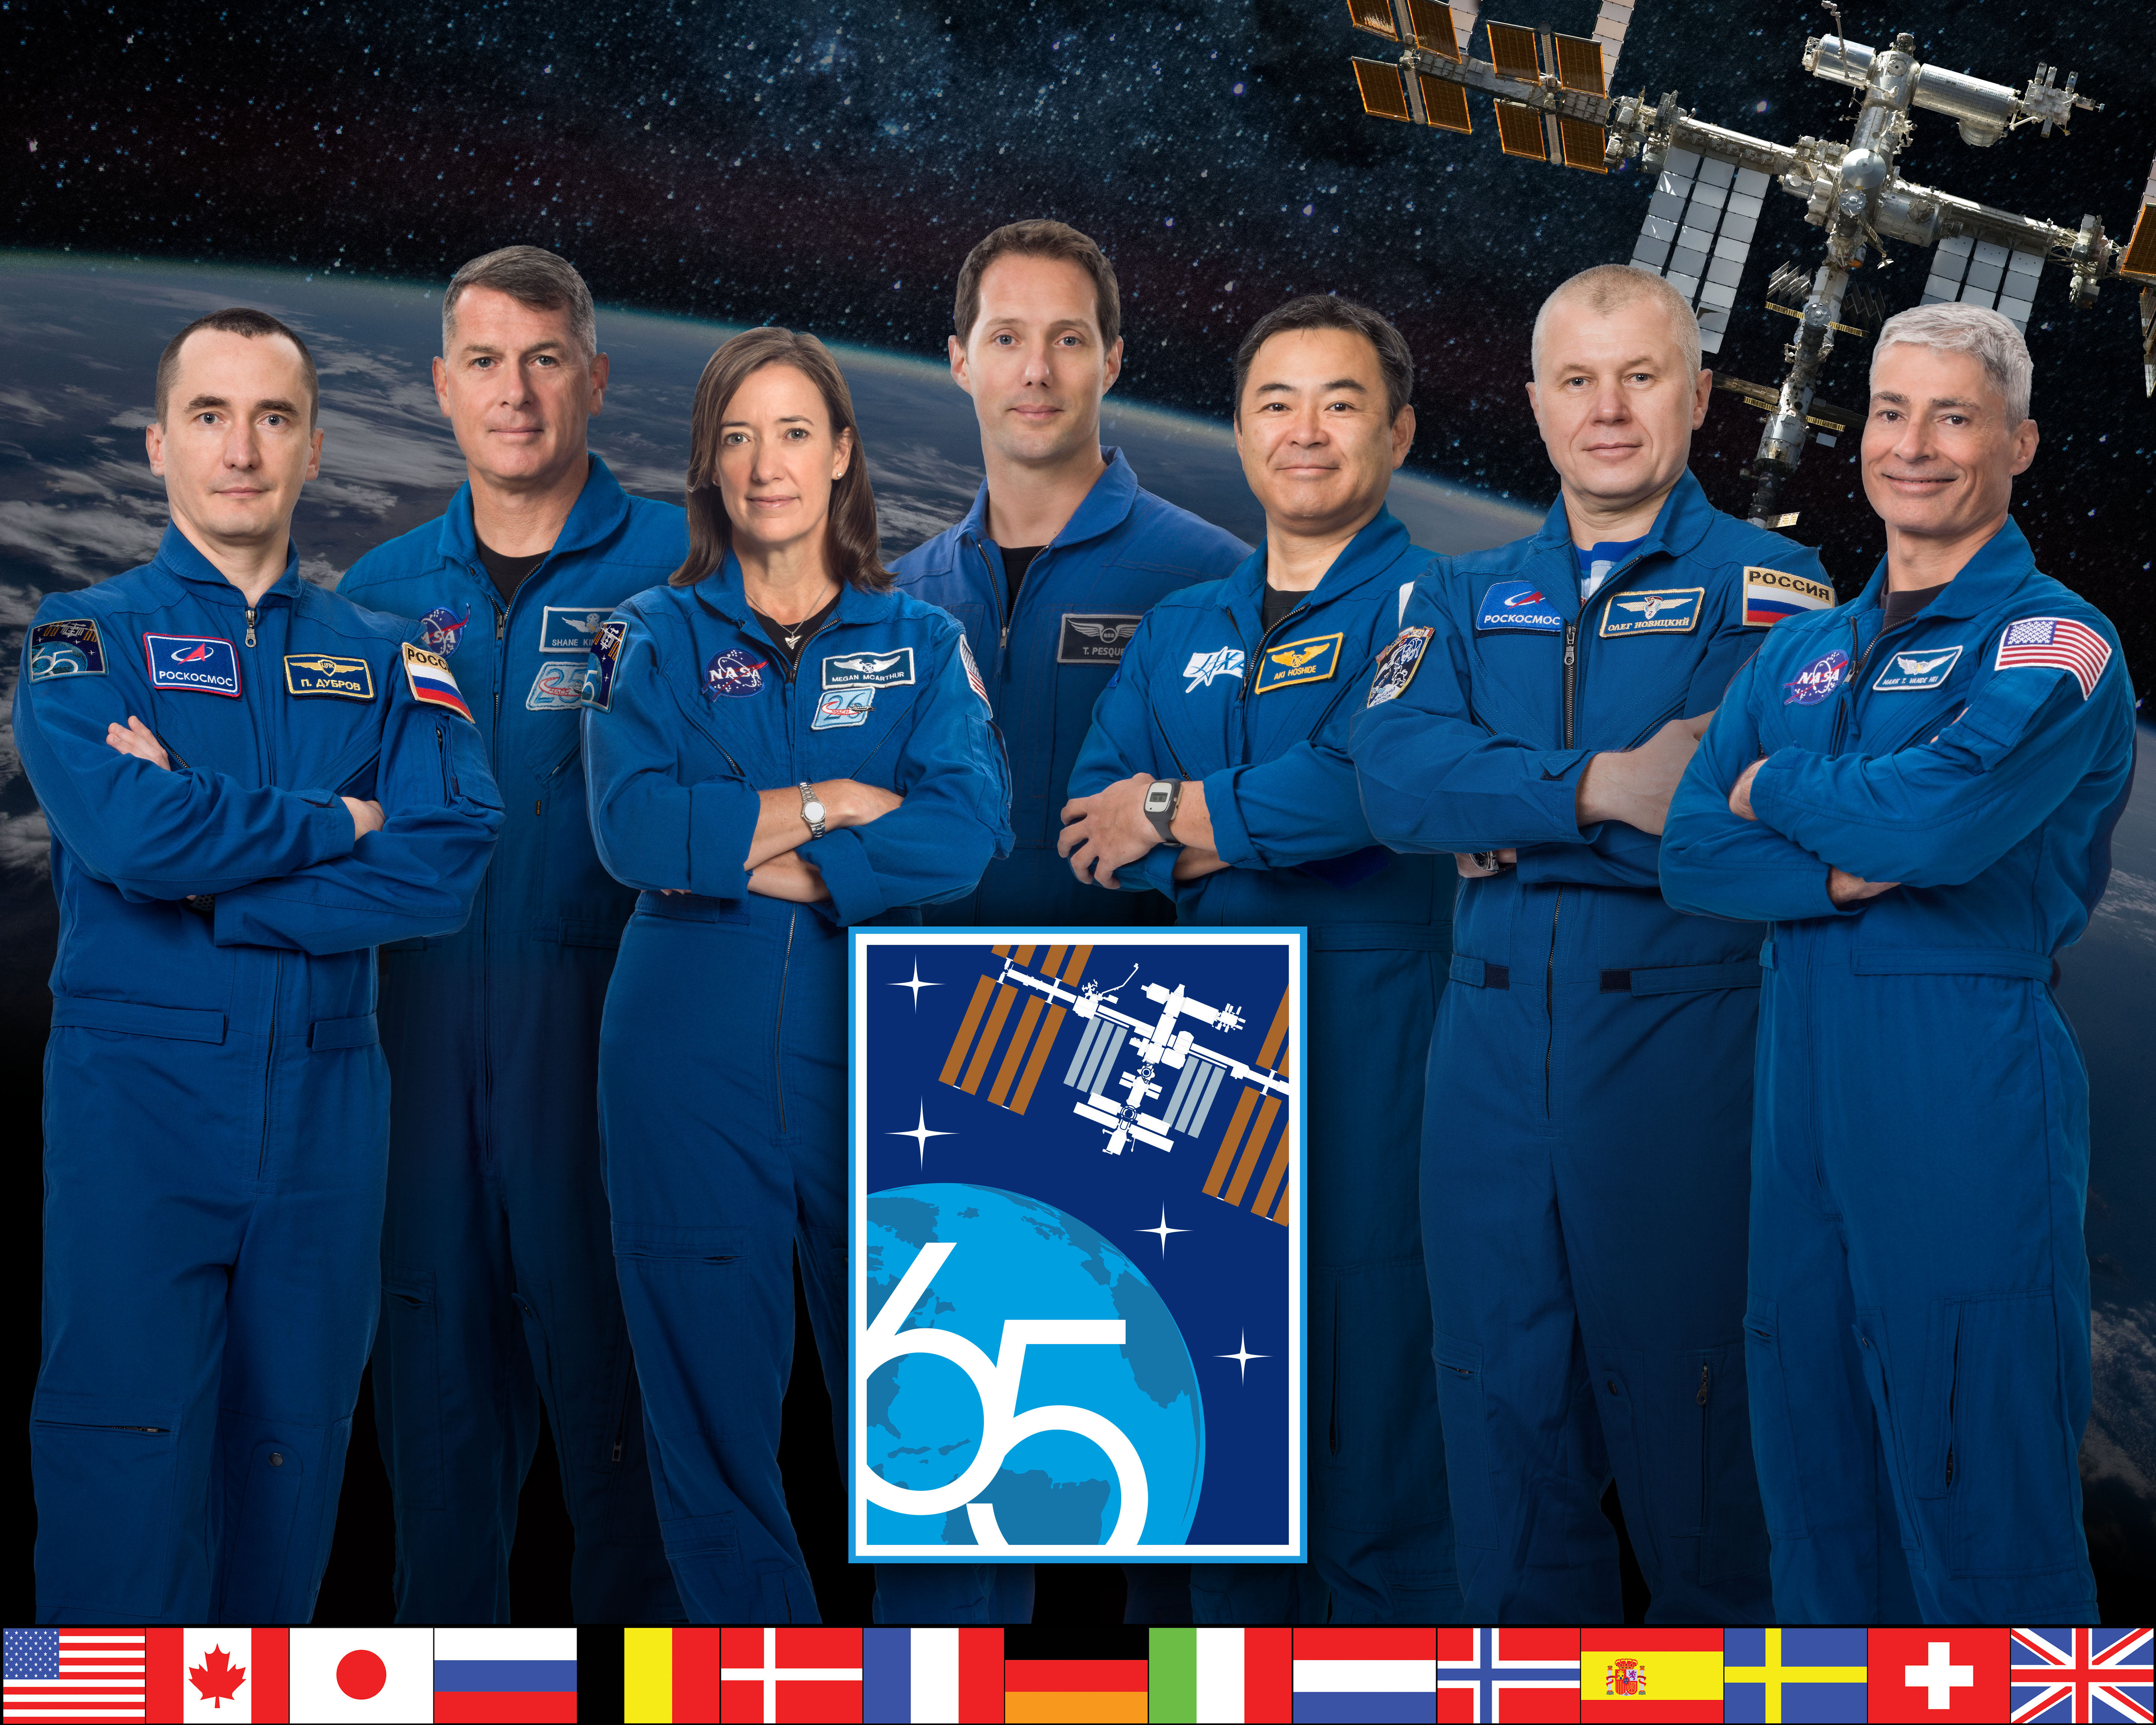 The seven-member Expedition 65